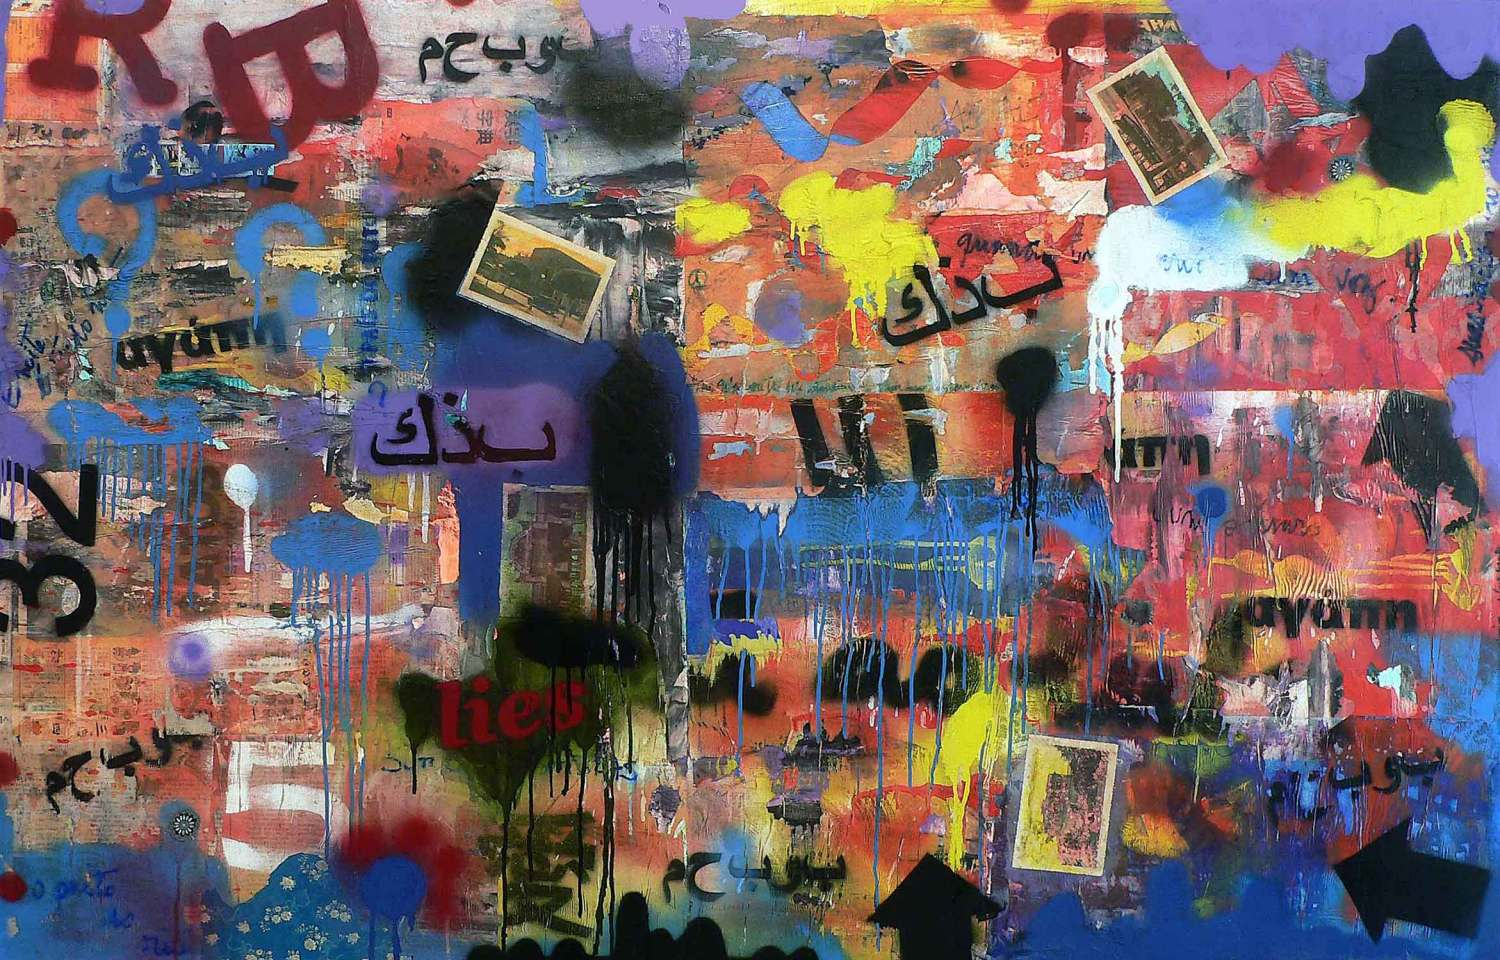 confirmation - 116 x 180 cm - acrylic, spray paint and collage on canvas - 2009